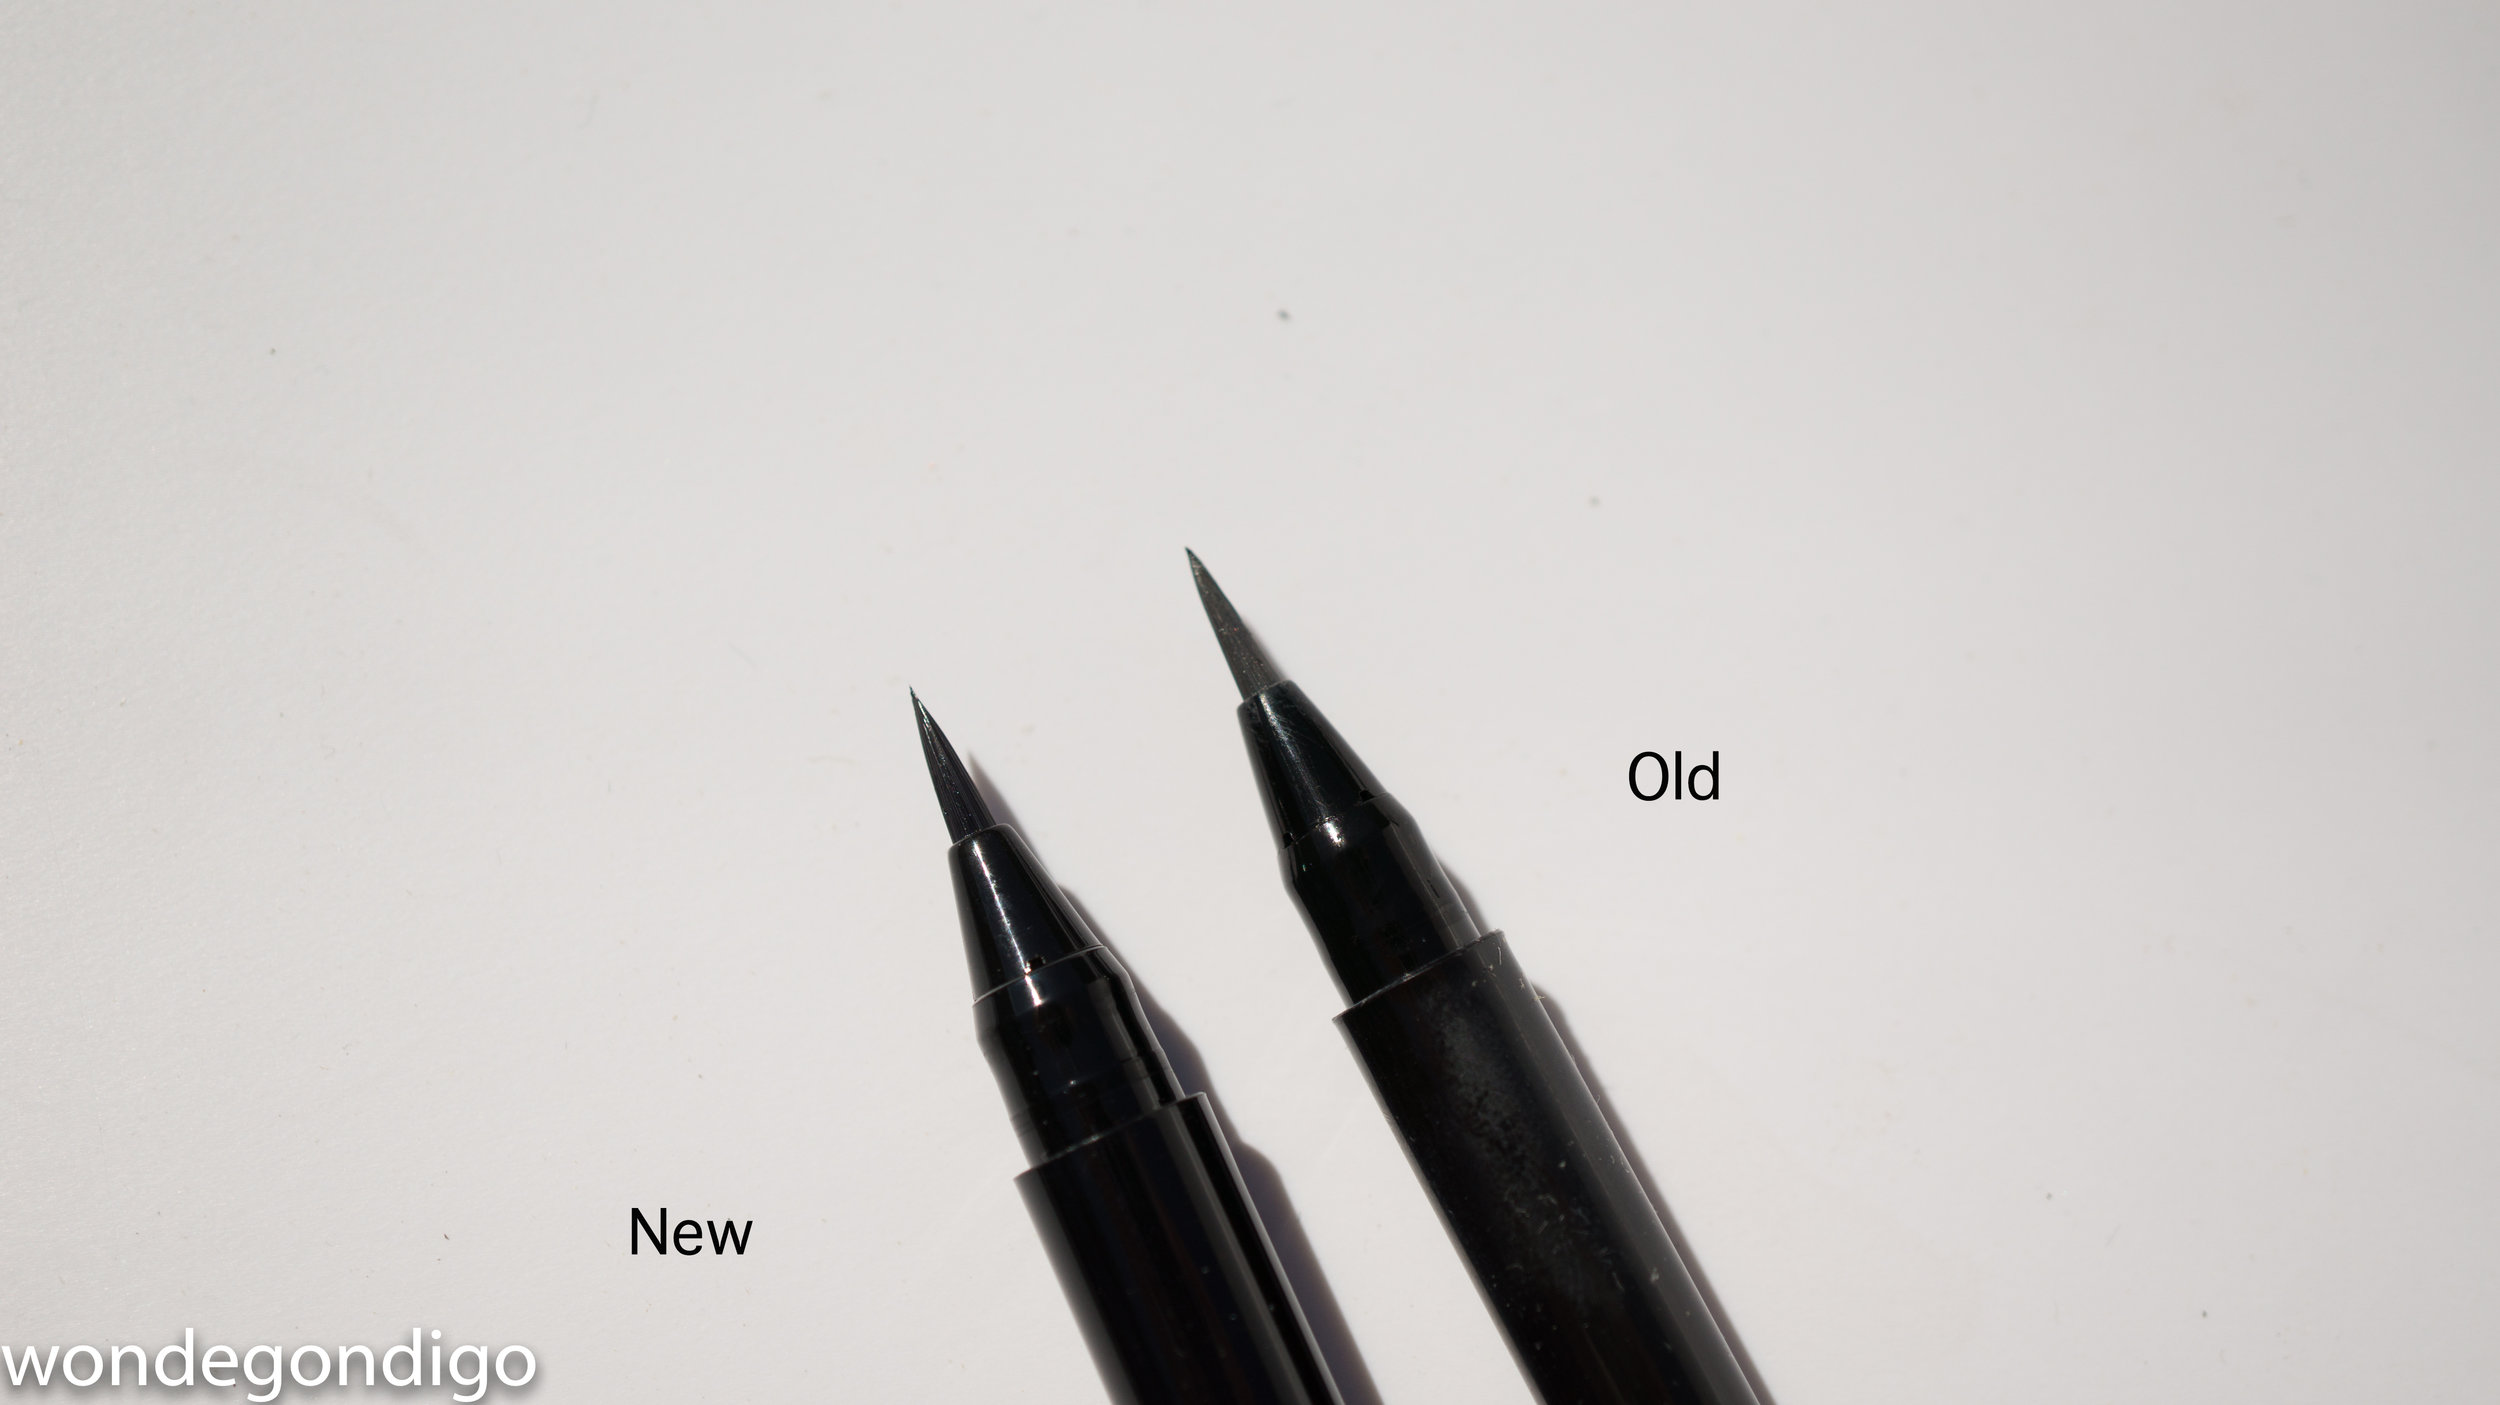 both are fine tipped brushes